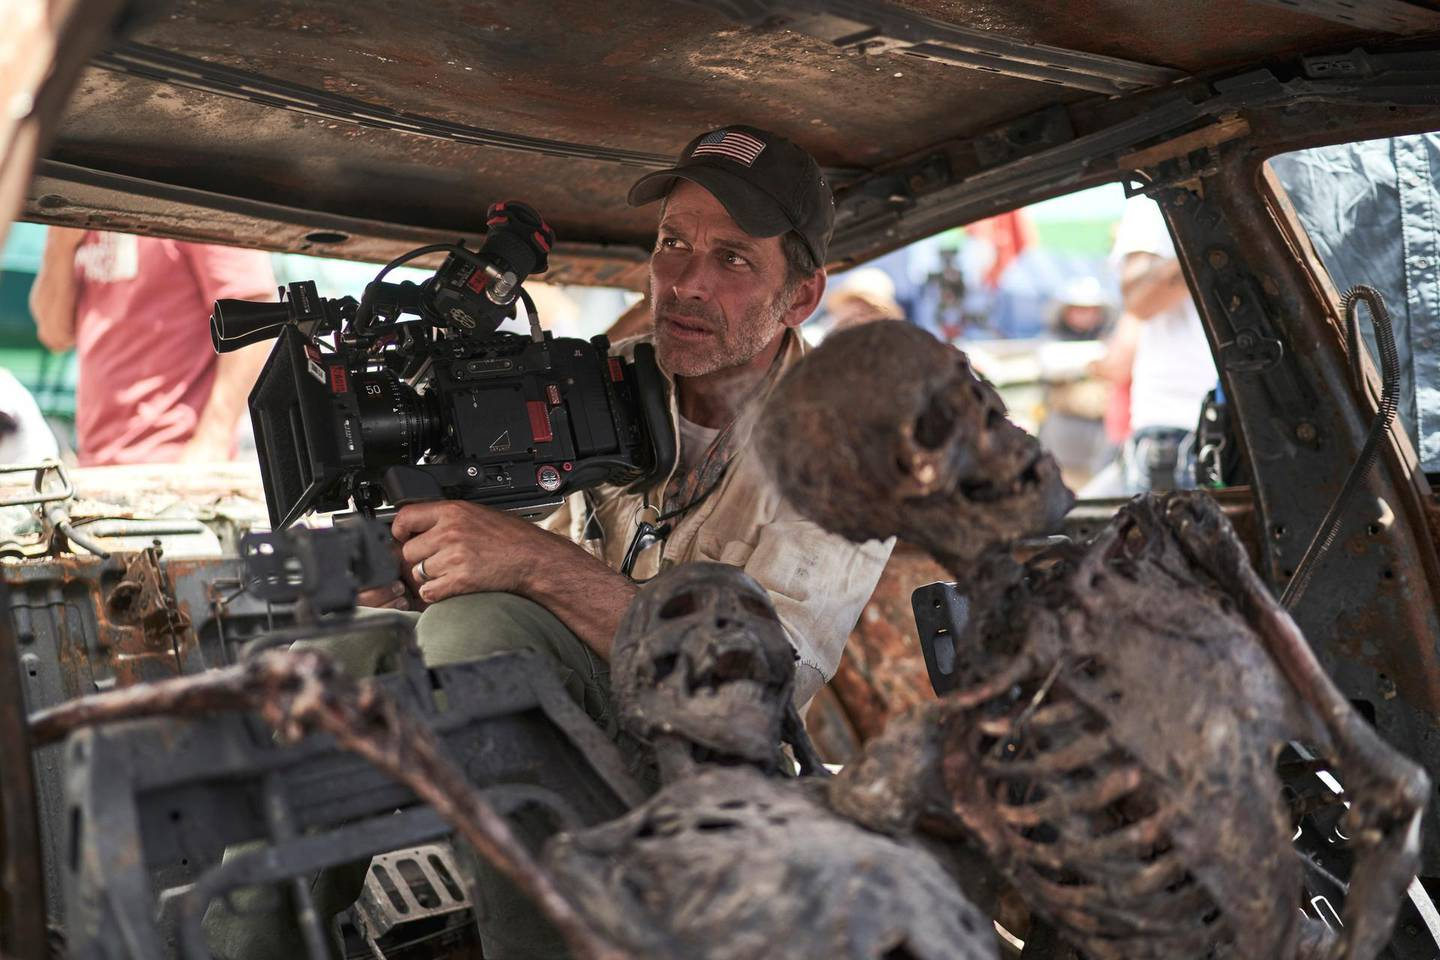 ARMY OF THE DEAD (L to R) ZACK SNYDER (DIRECTOR, PRODUCER, WRITER) in ARMY OF THE DEAD. Cr. CLAY ENOS/NETFLIX © 2021